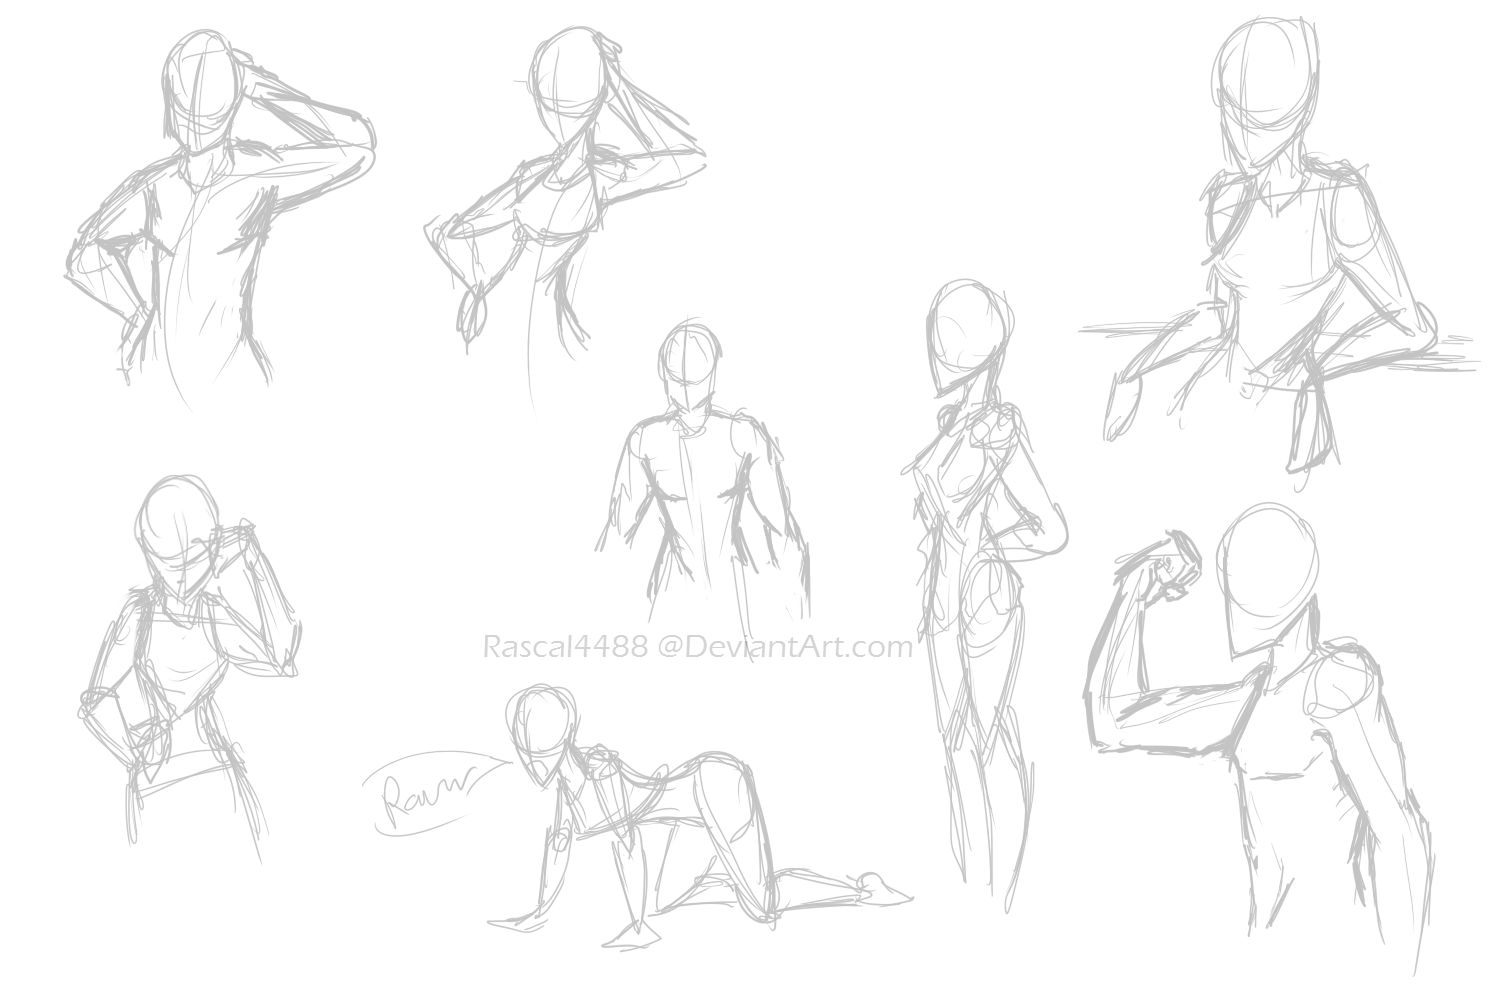 Body Anatomy Drawing at GetDrawings.com | Free for personal use Body ...